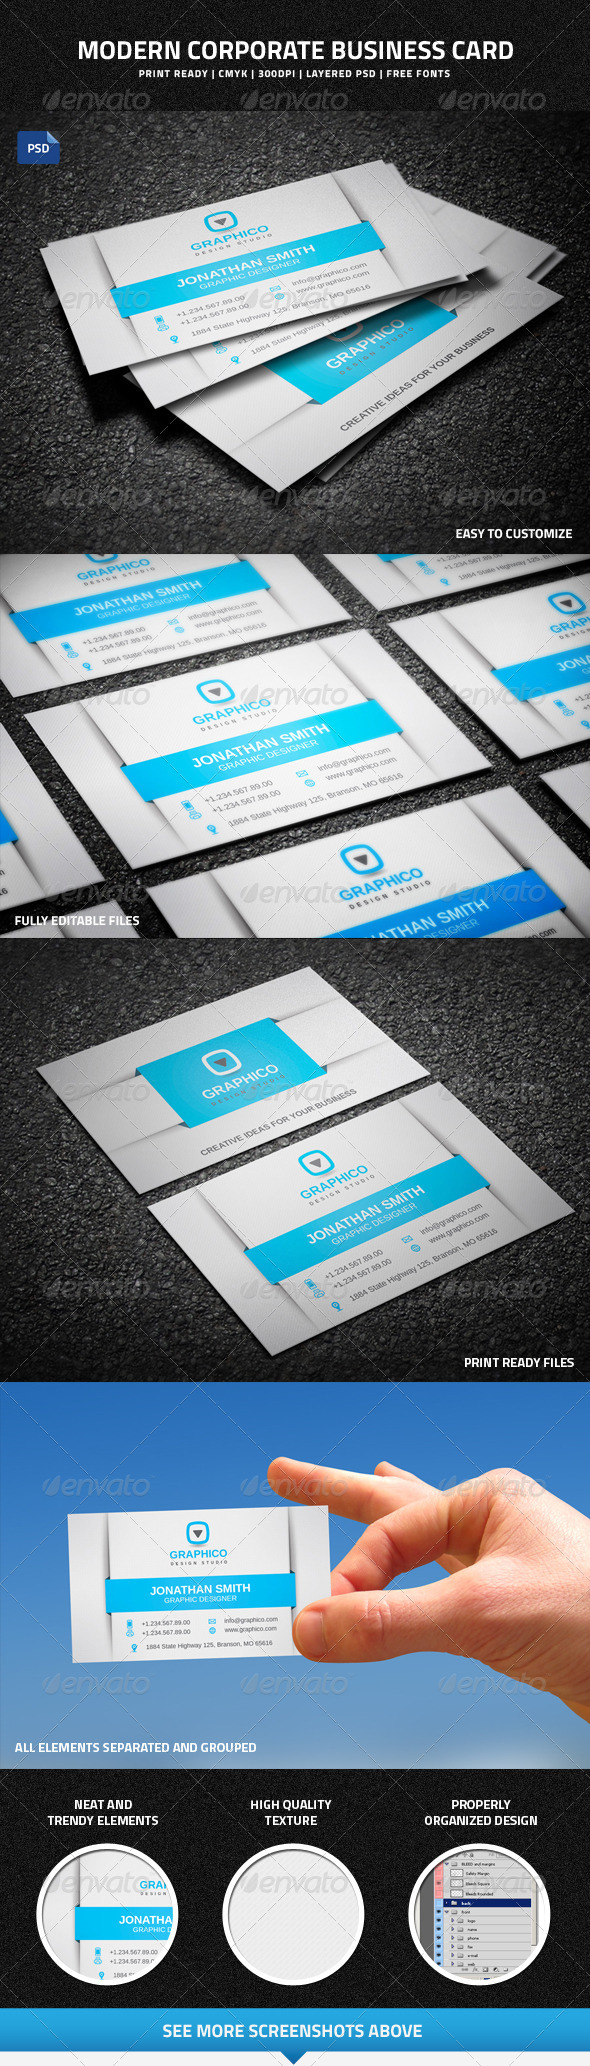 GraphicRiver Modern Corporate Business Card 7577451